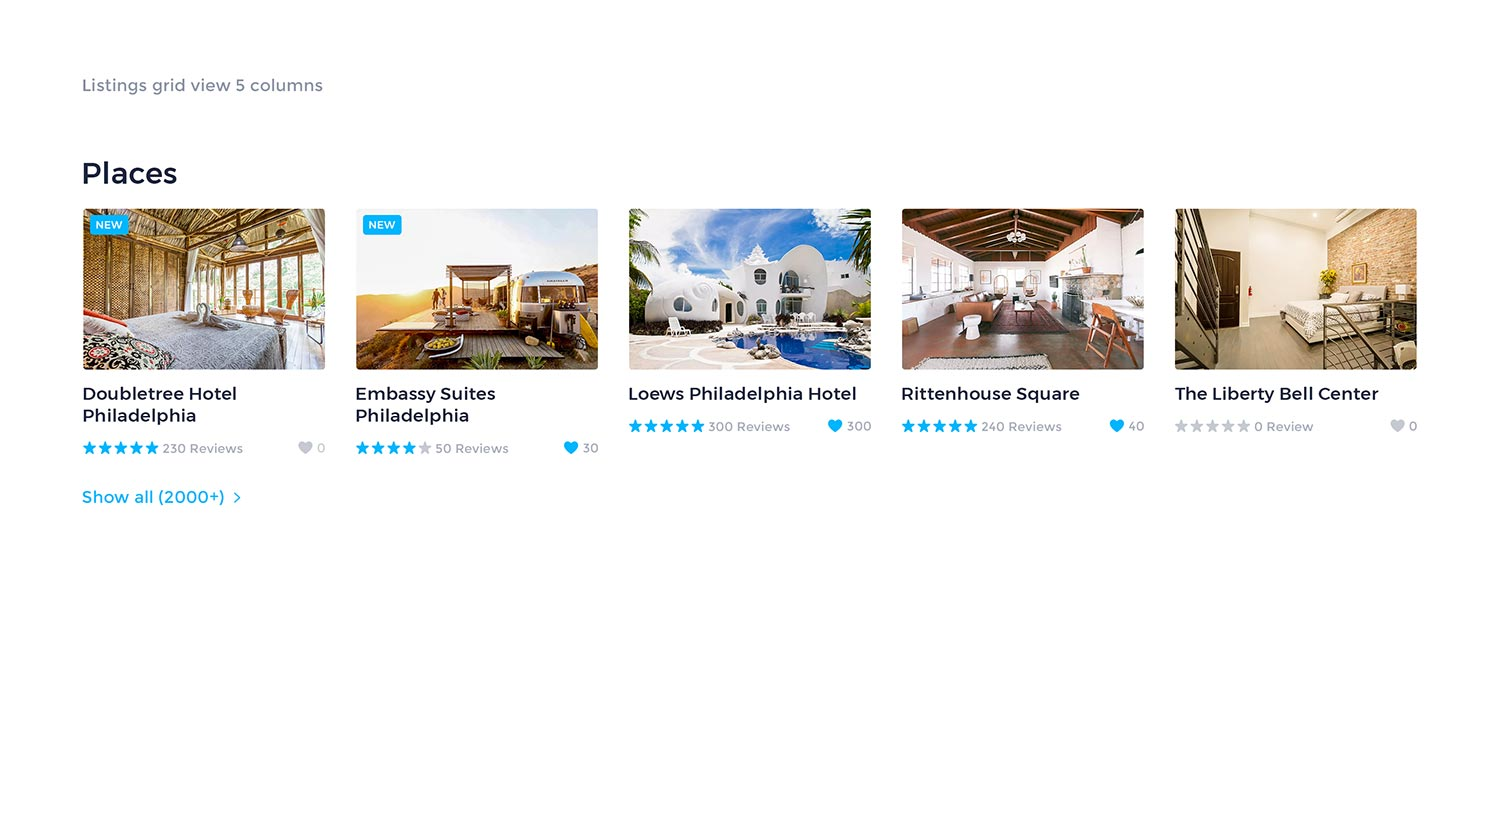 Listings Grid View 5 Columns